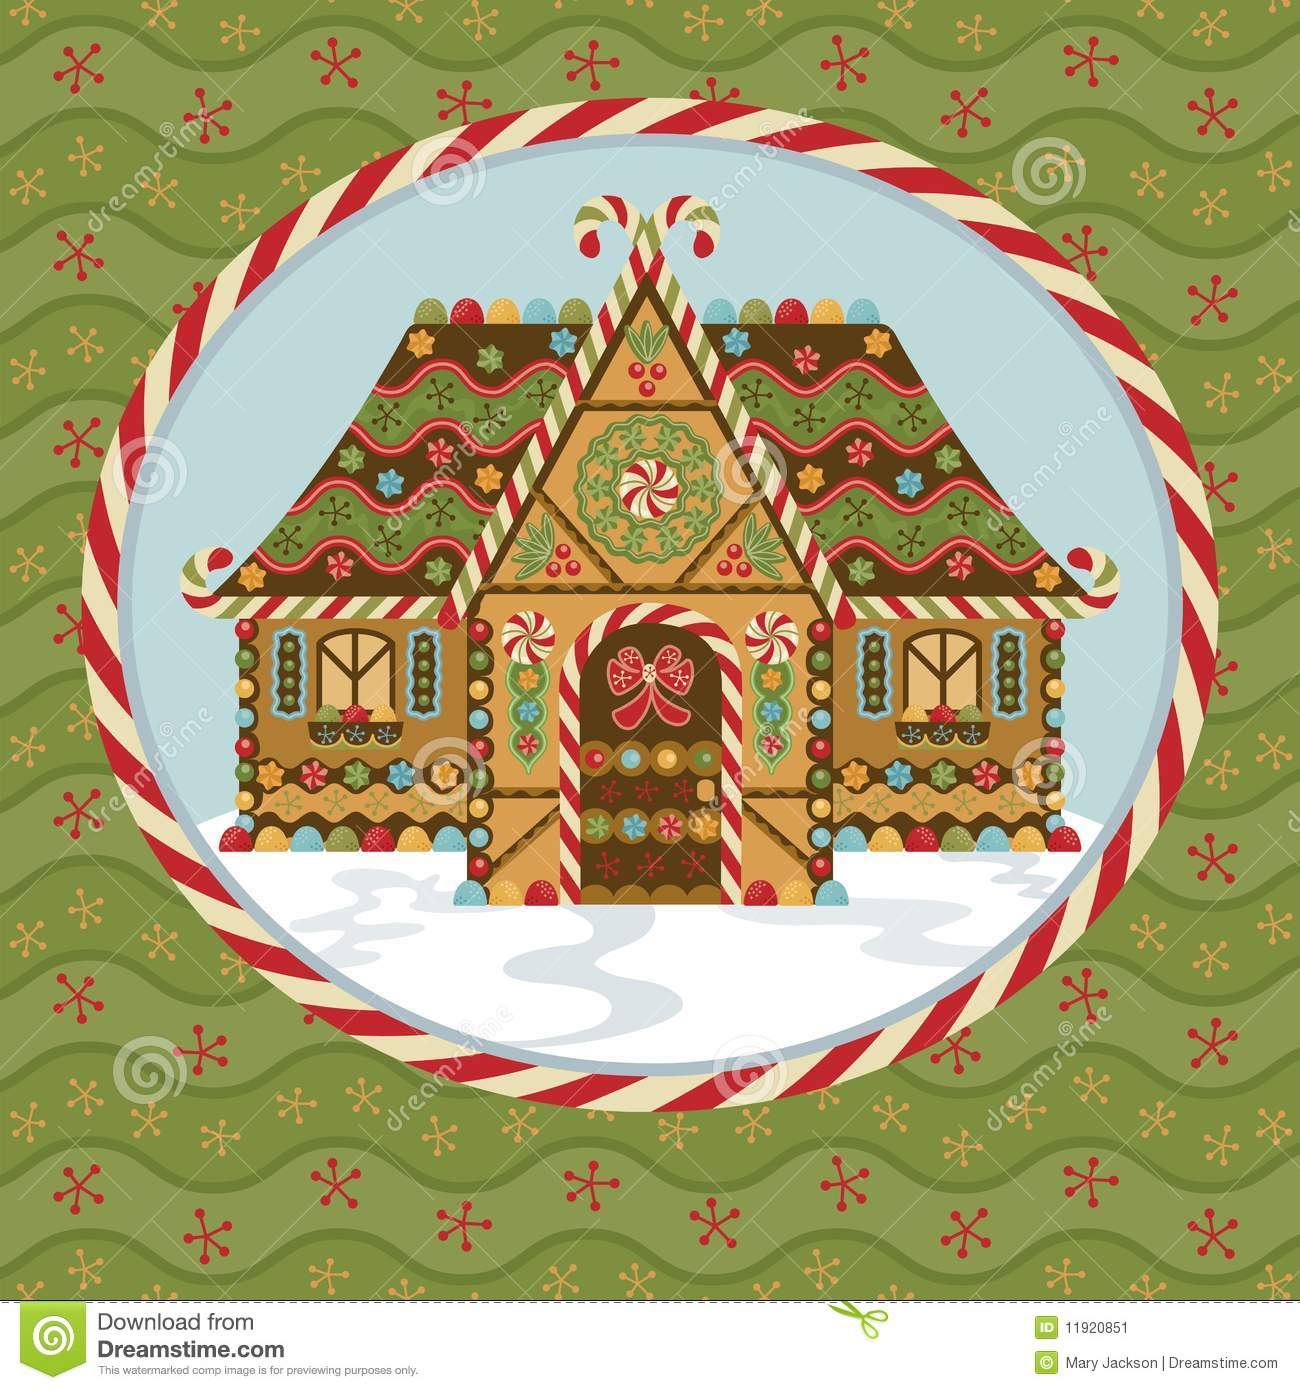 christmas clip art gingerbread house - photo #31